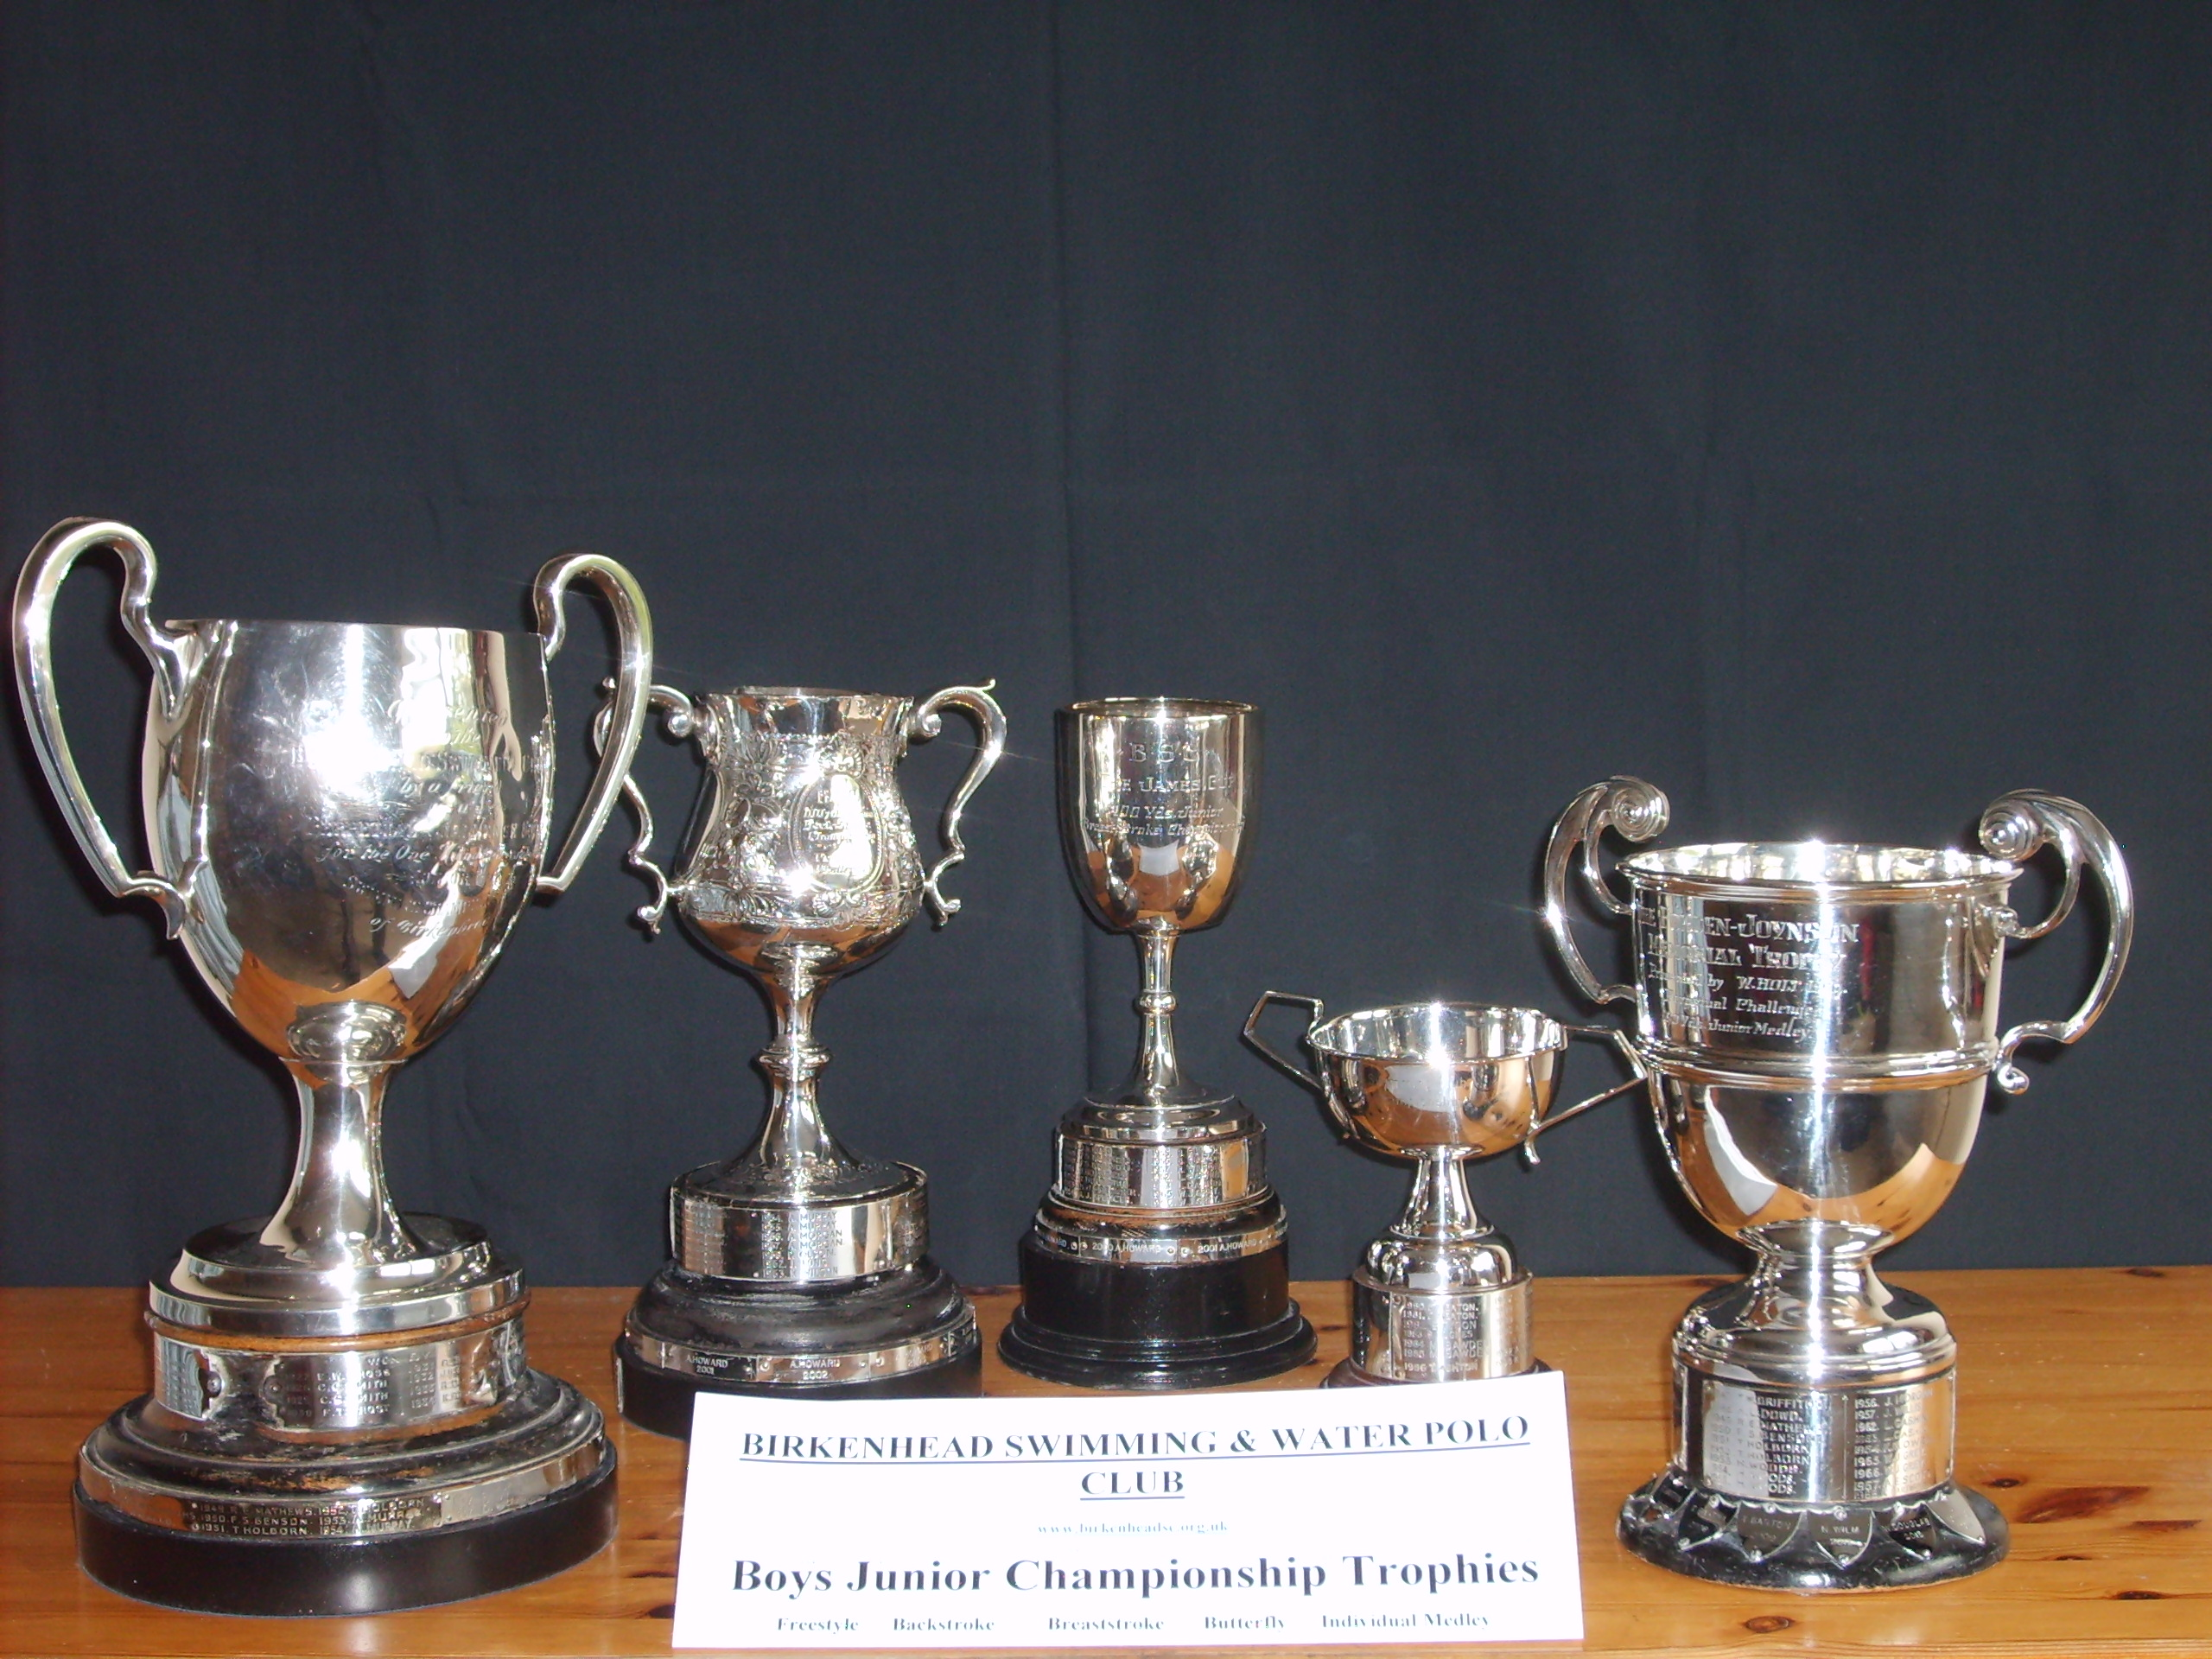 Boys Junior Championship Trophies